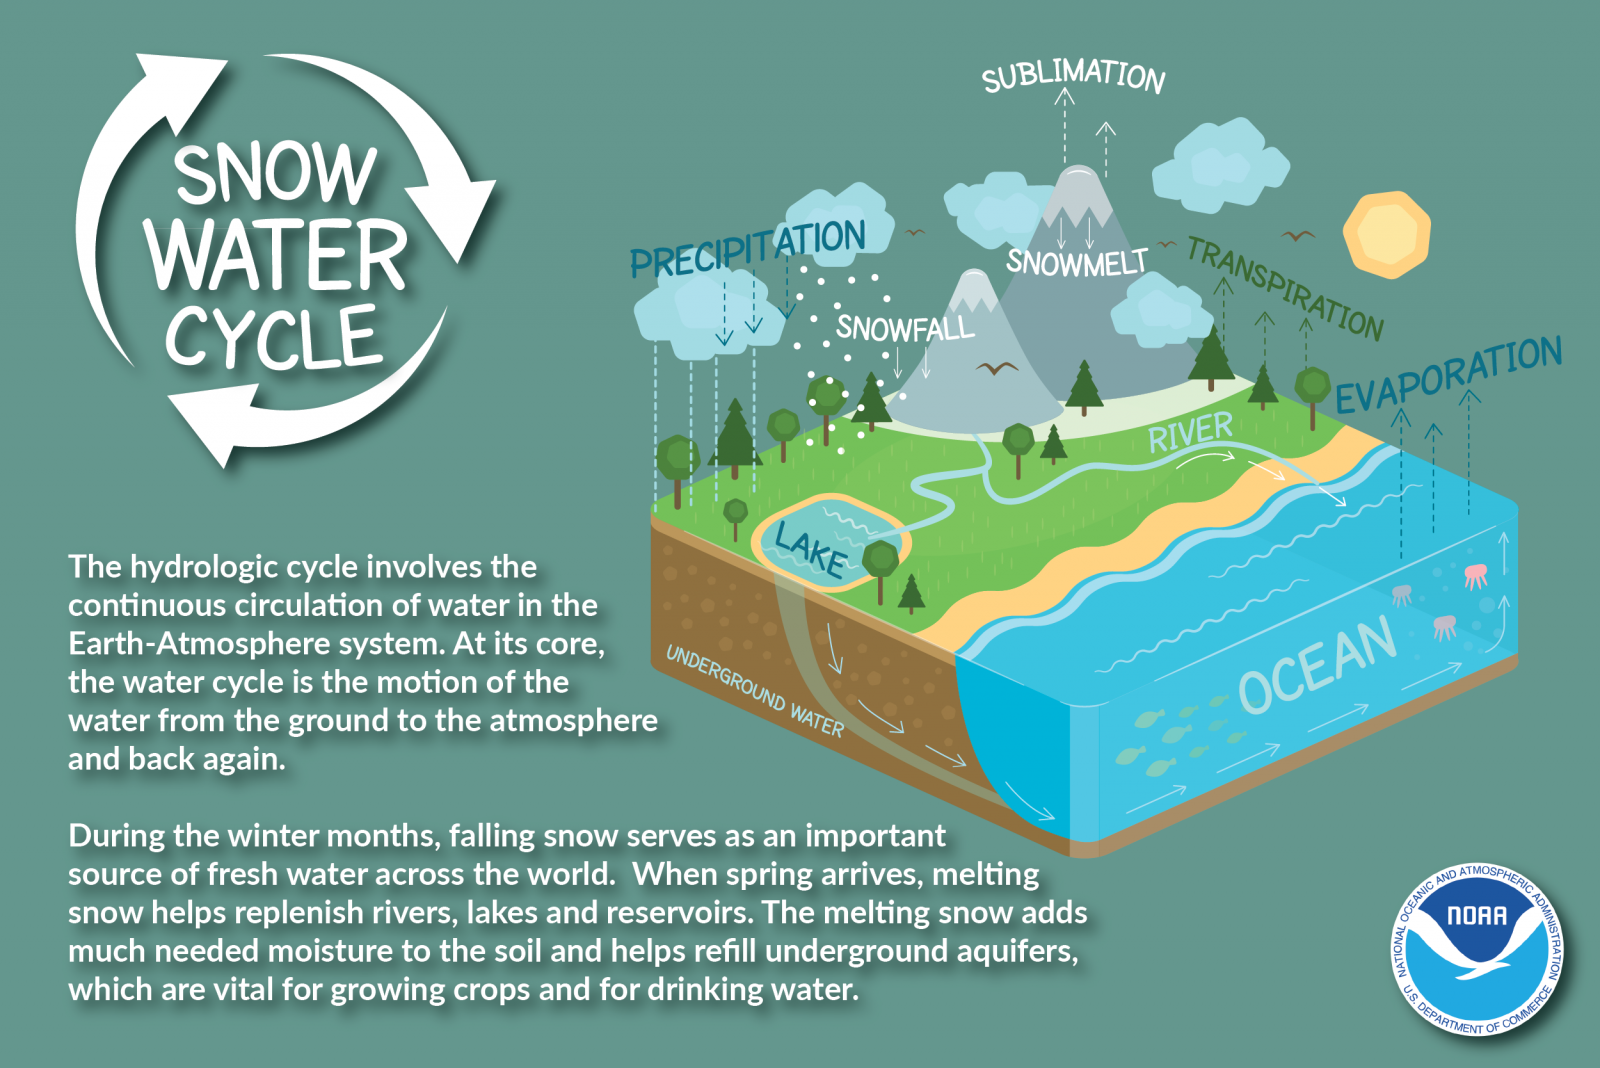 Snow Water Cycle